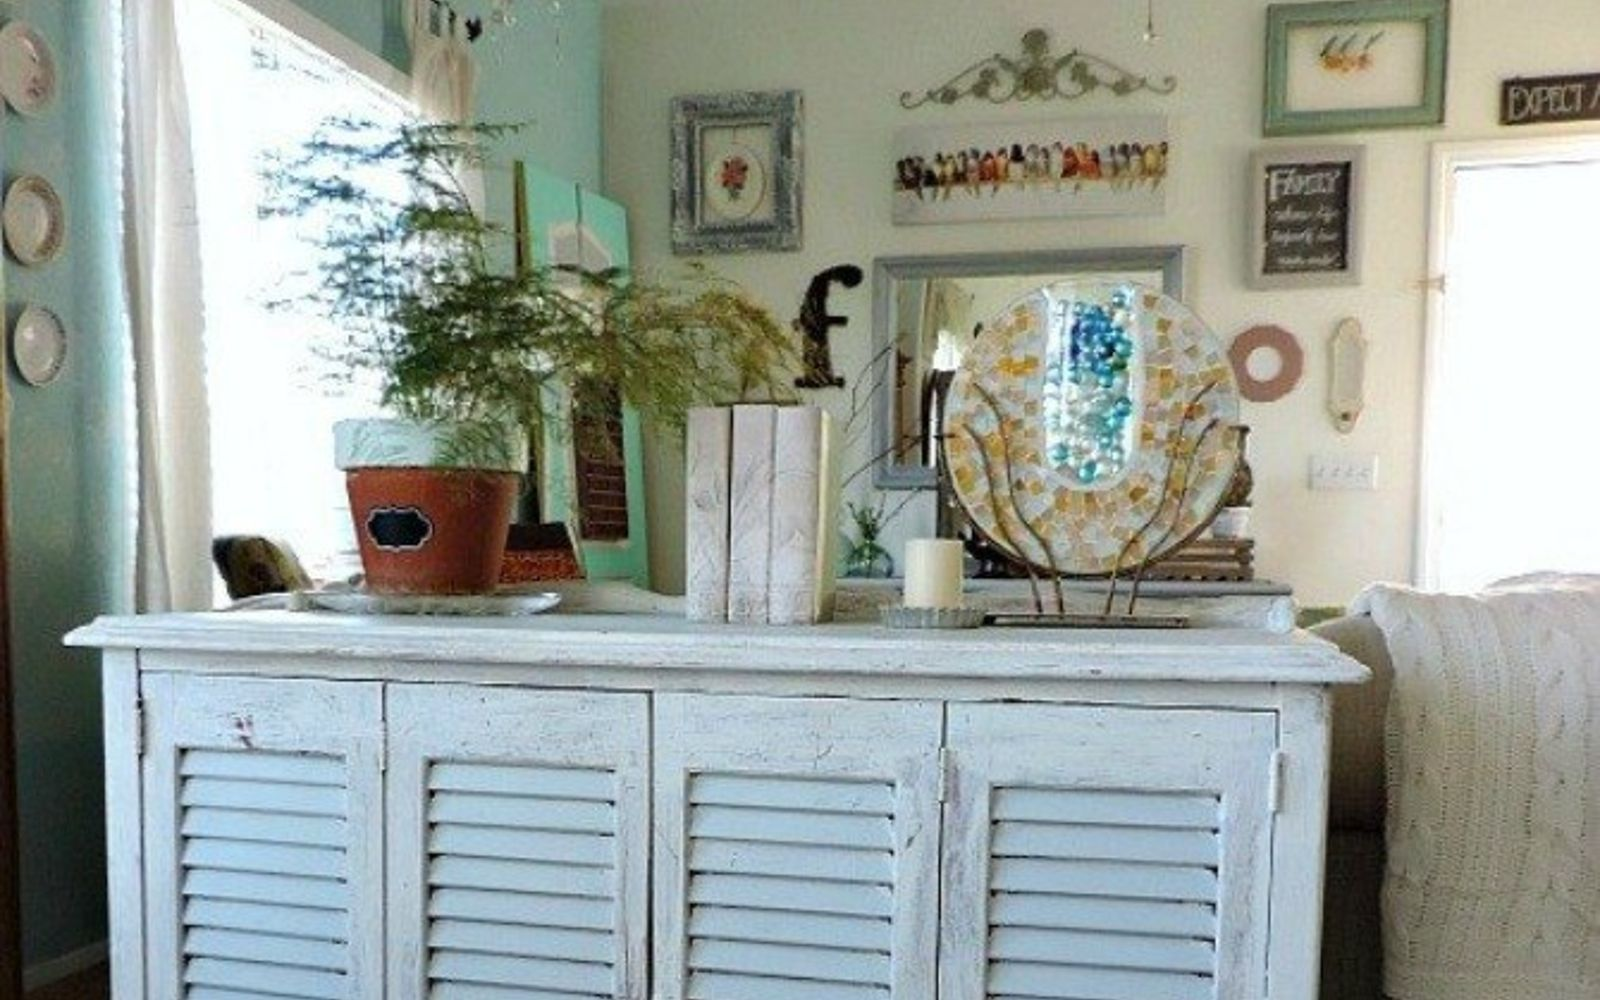 s 20 ways to get a fixer upper makeover without being on the show, home decor, painted furniture, rustic furniture, Mix and match thrift store pieces